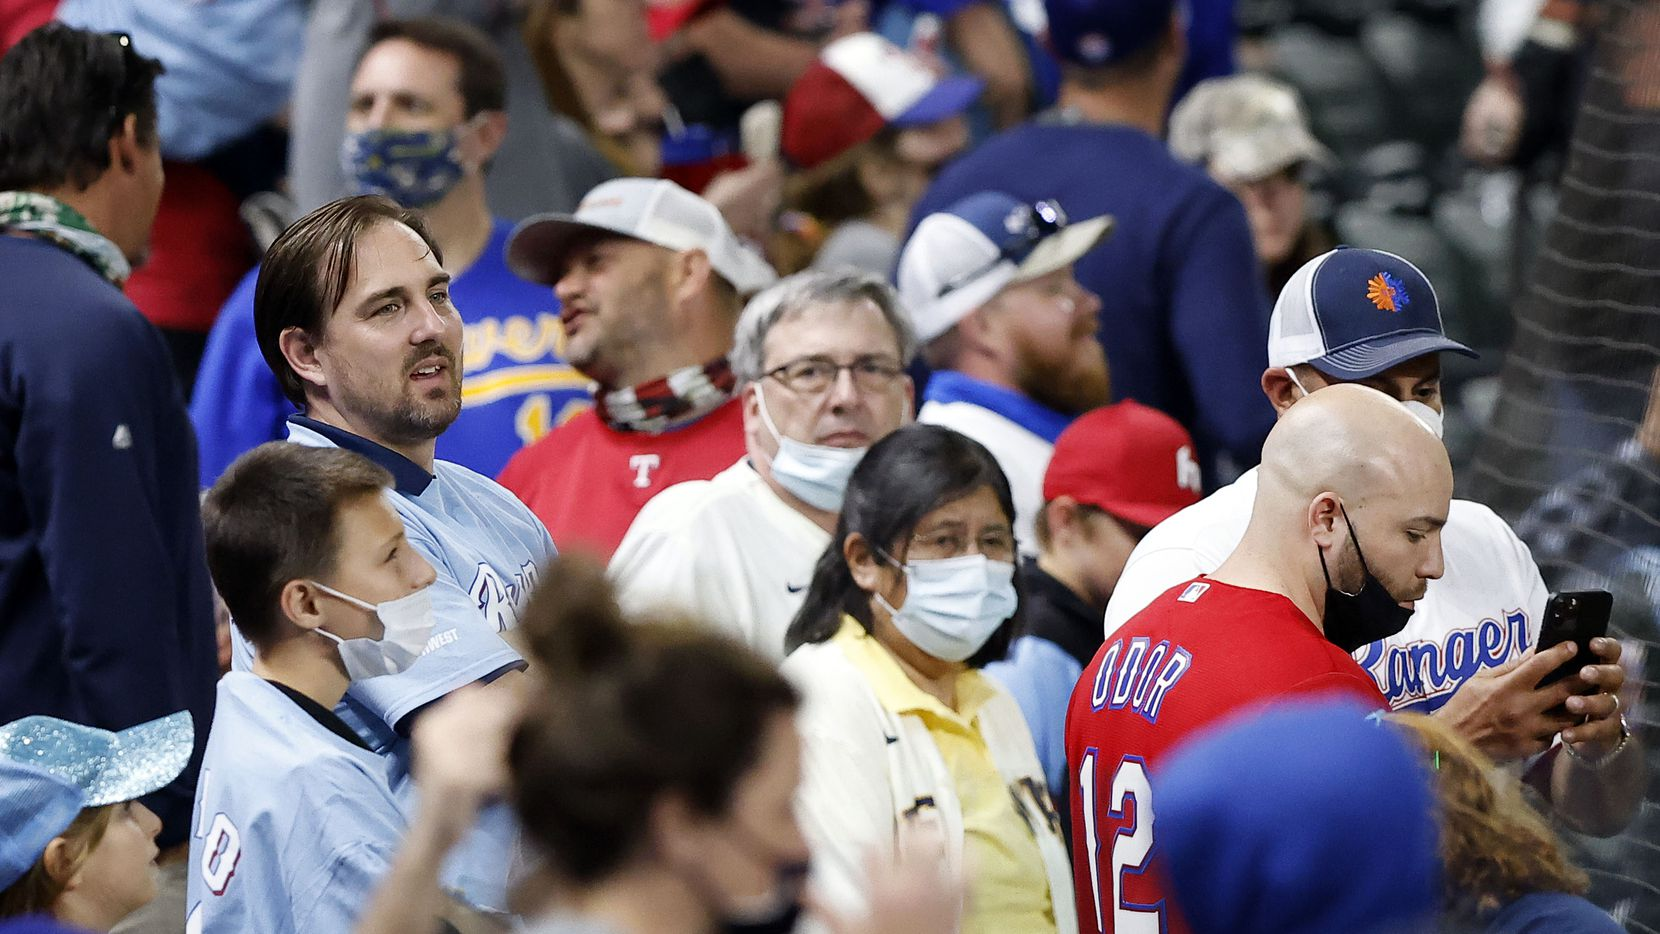 Texas Rangers fans, some with and without masks watch an exhibition game in the seventh inning at Globe Life Field in Arlington, Texas. The Rangers were facing the Brewers, Monday, March 29, 2021.